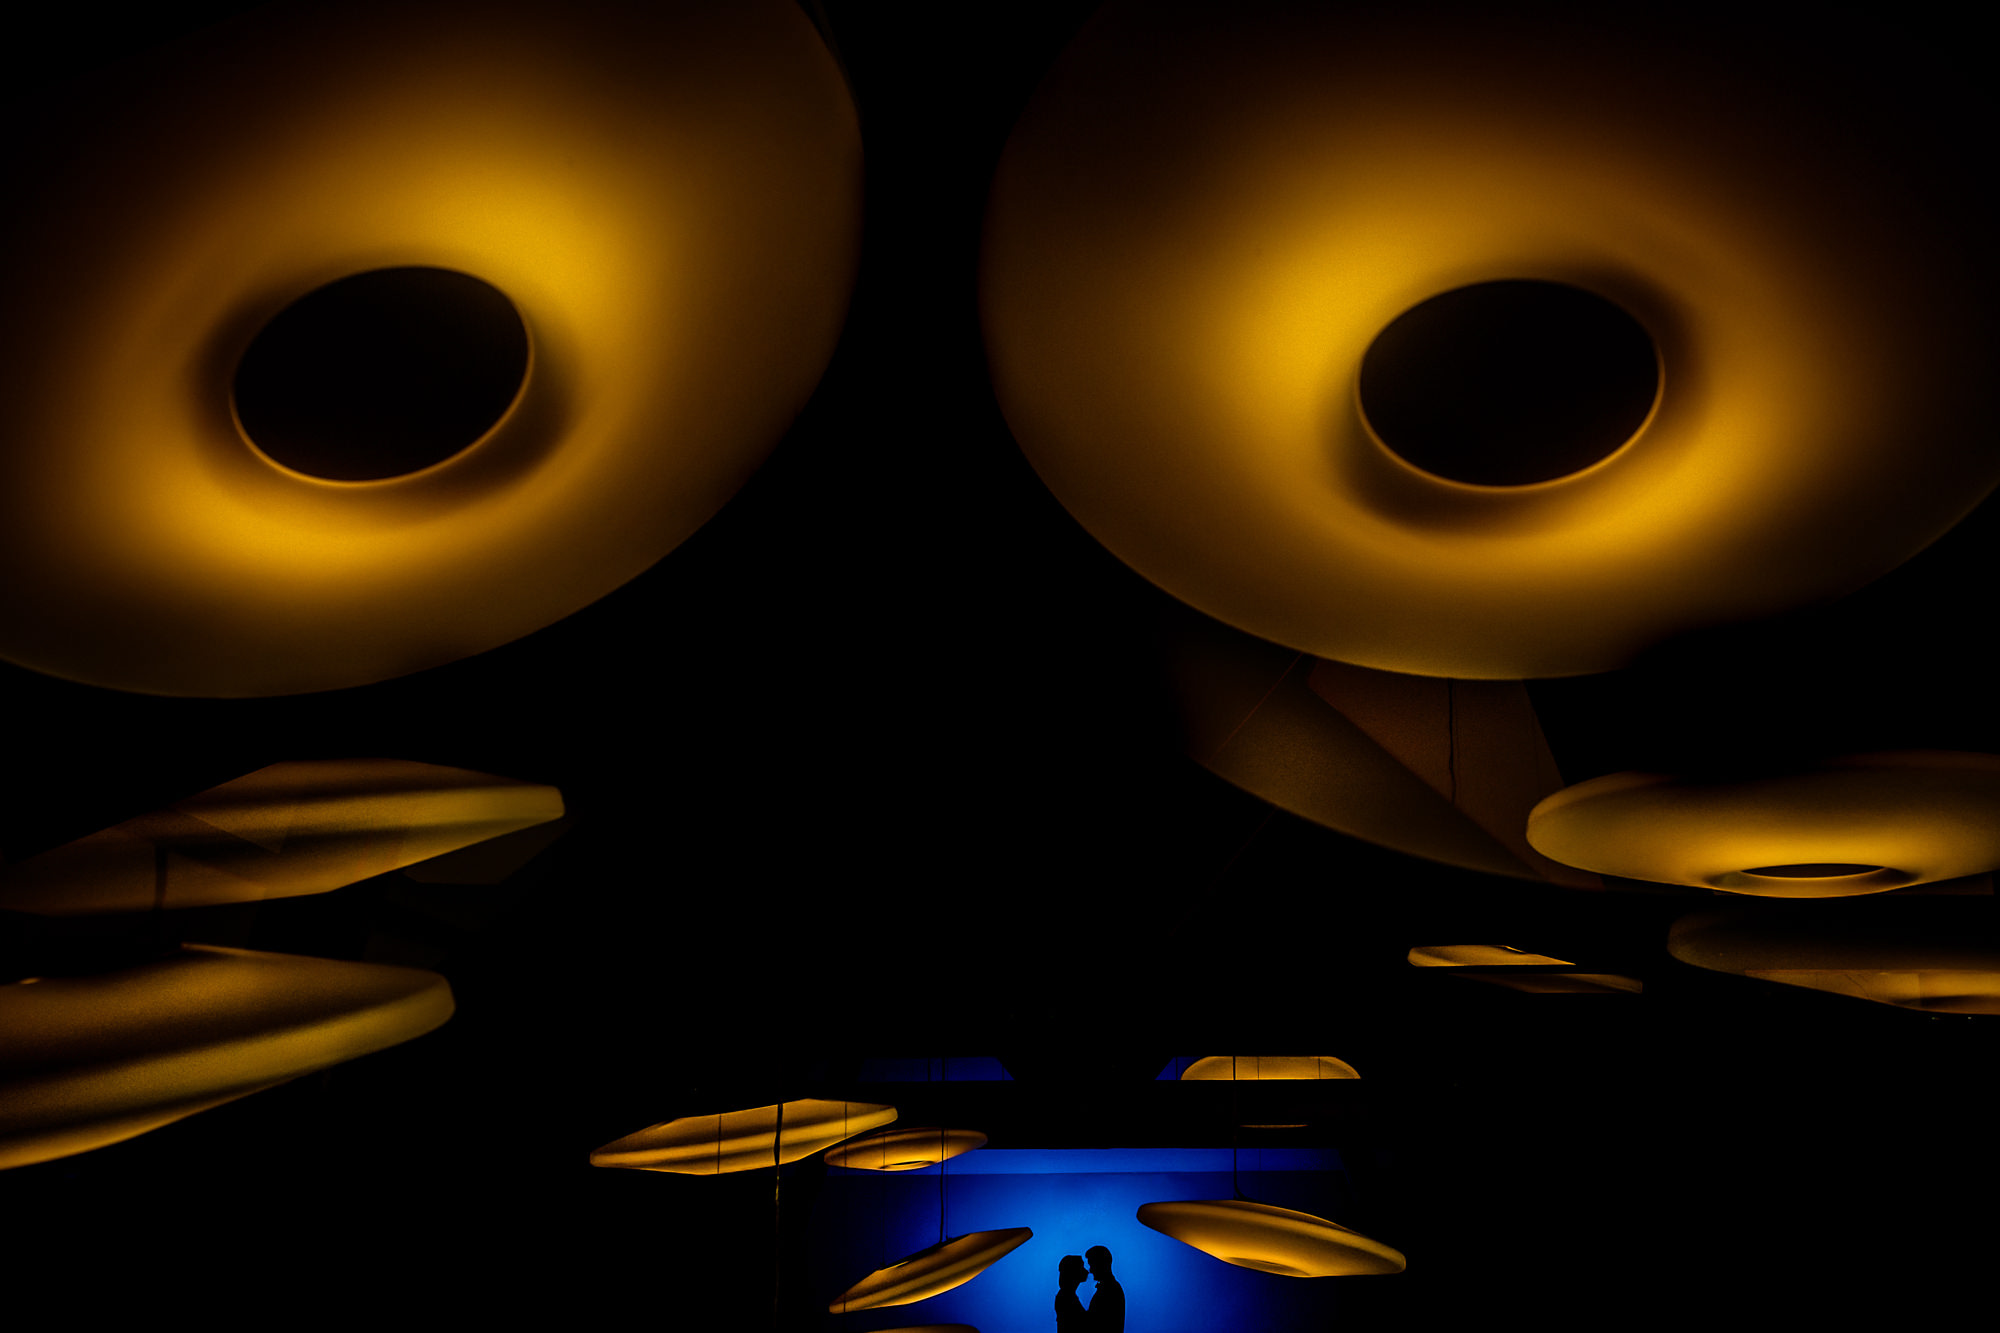 Silhouette of couple in blue light under golden sculptures by Eppel Photography